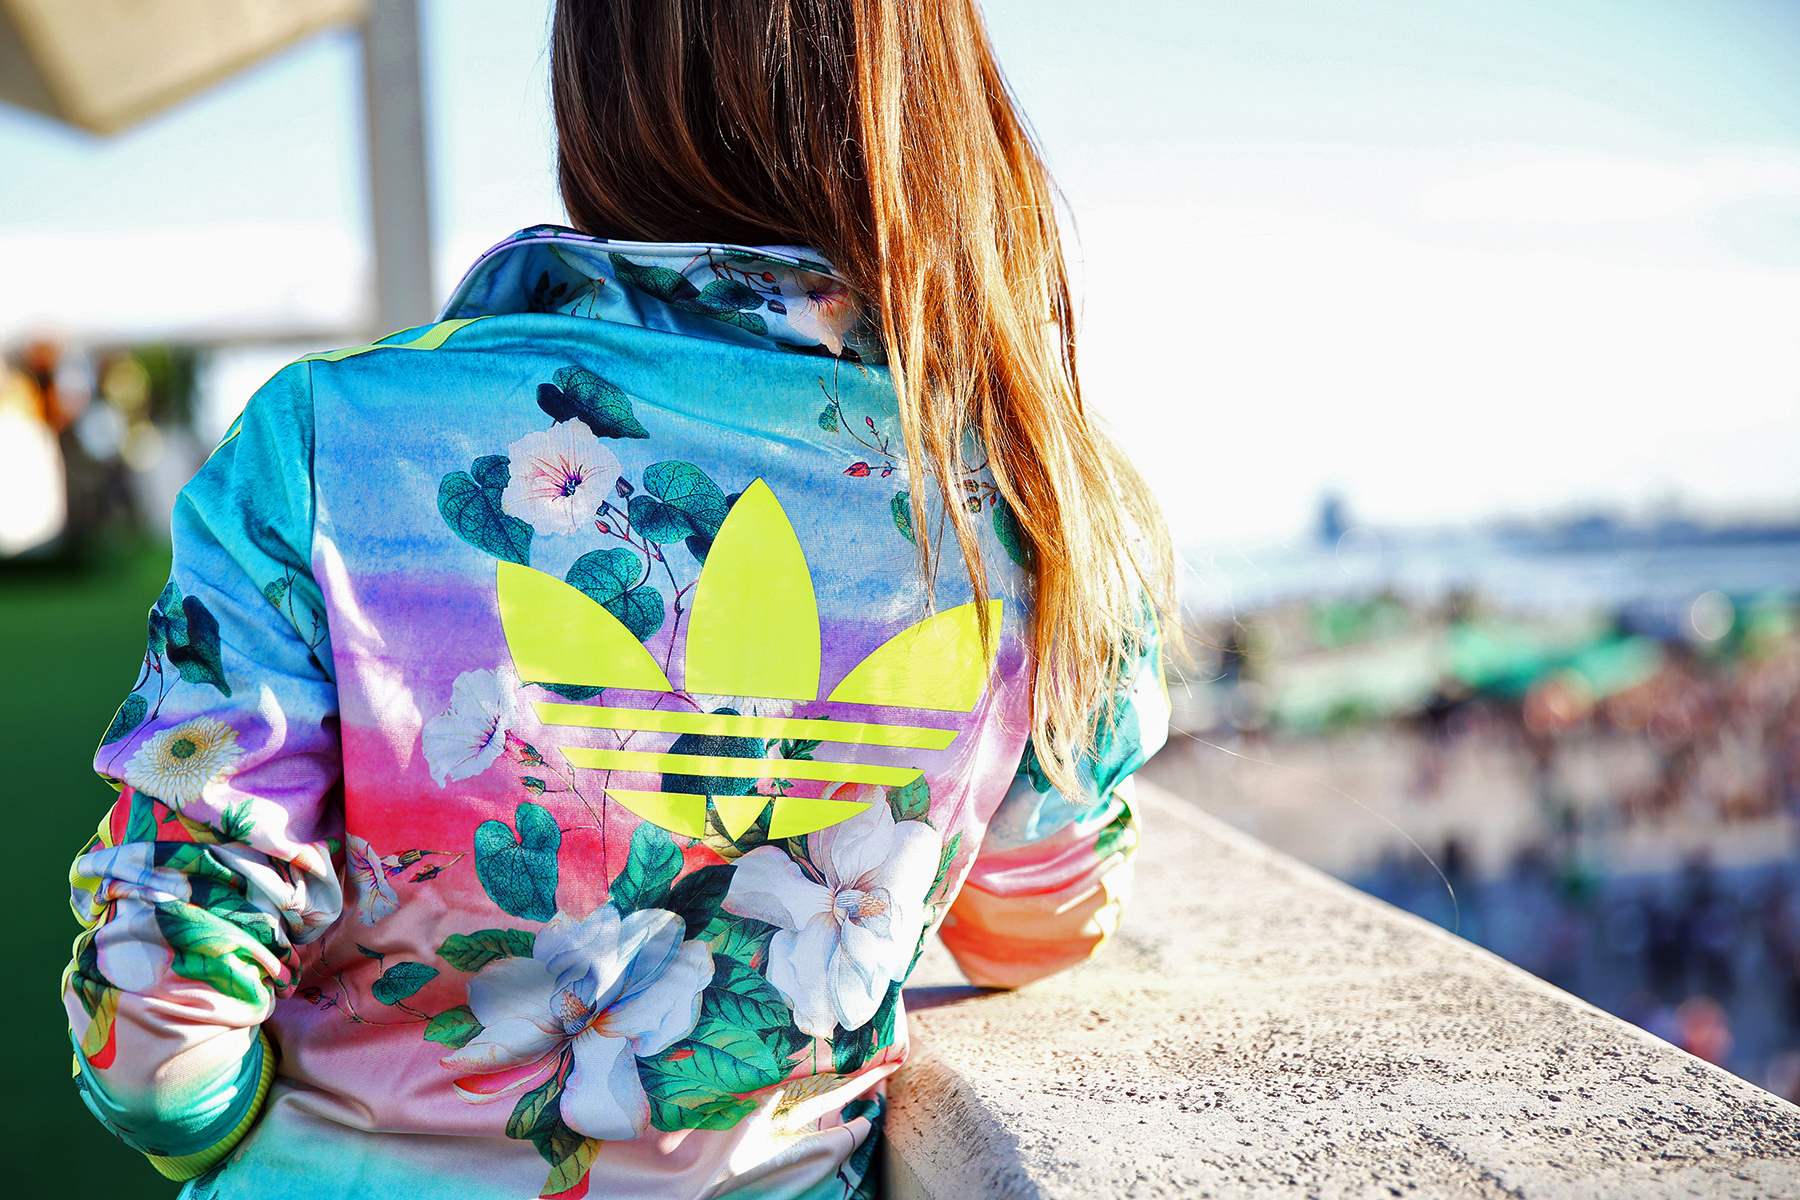 trendy_taste-look-outfit-street_style-ootd-blog-blogger_españa-fashion_spain-moda_españa-festival-primavera_sound-adidas_originals-stan_smith-barcelona-camiseta-zapas-65